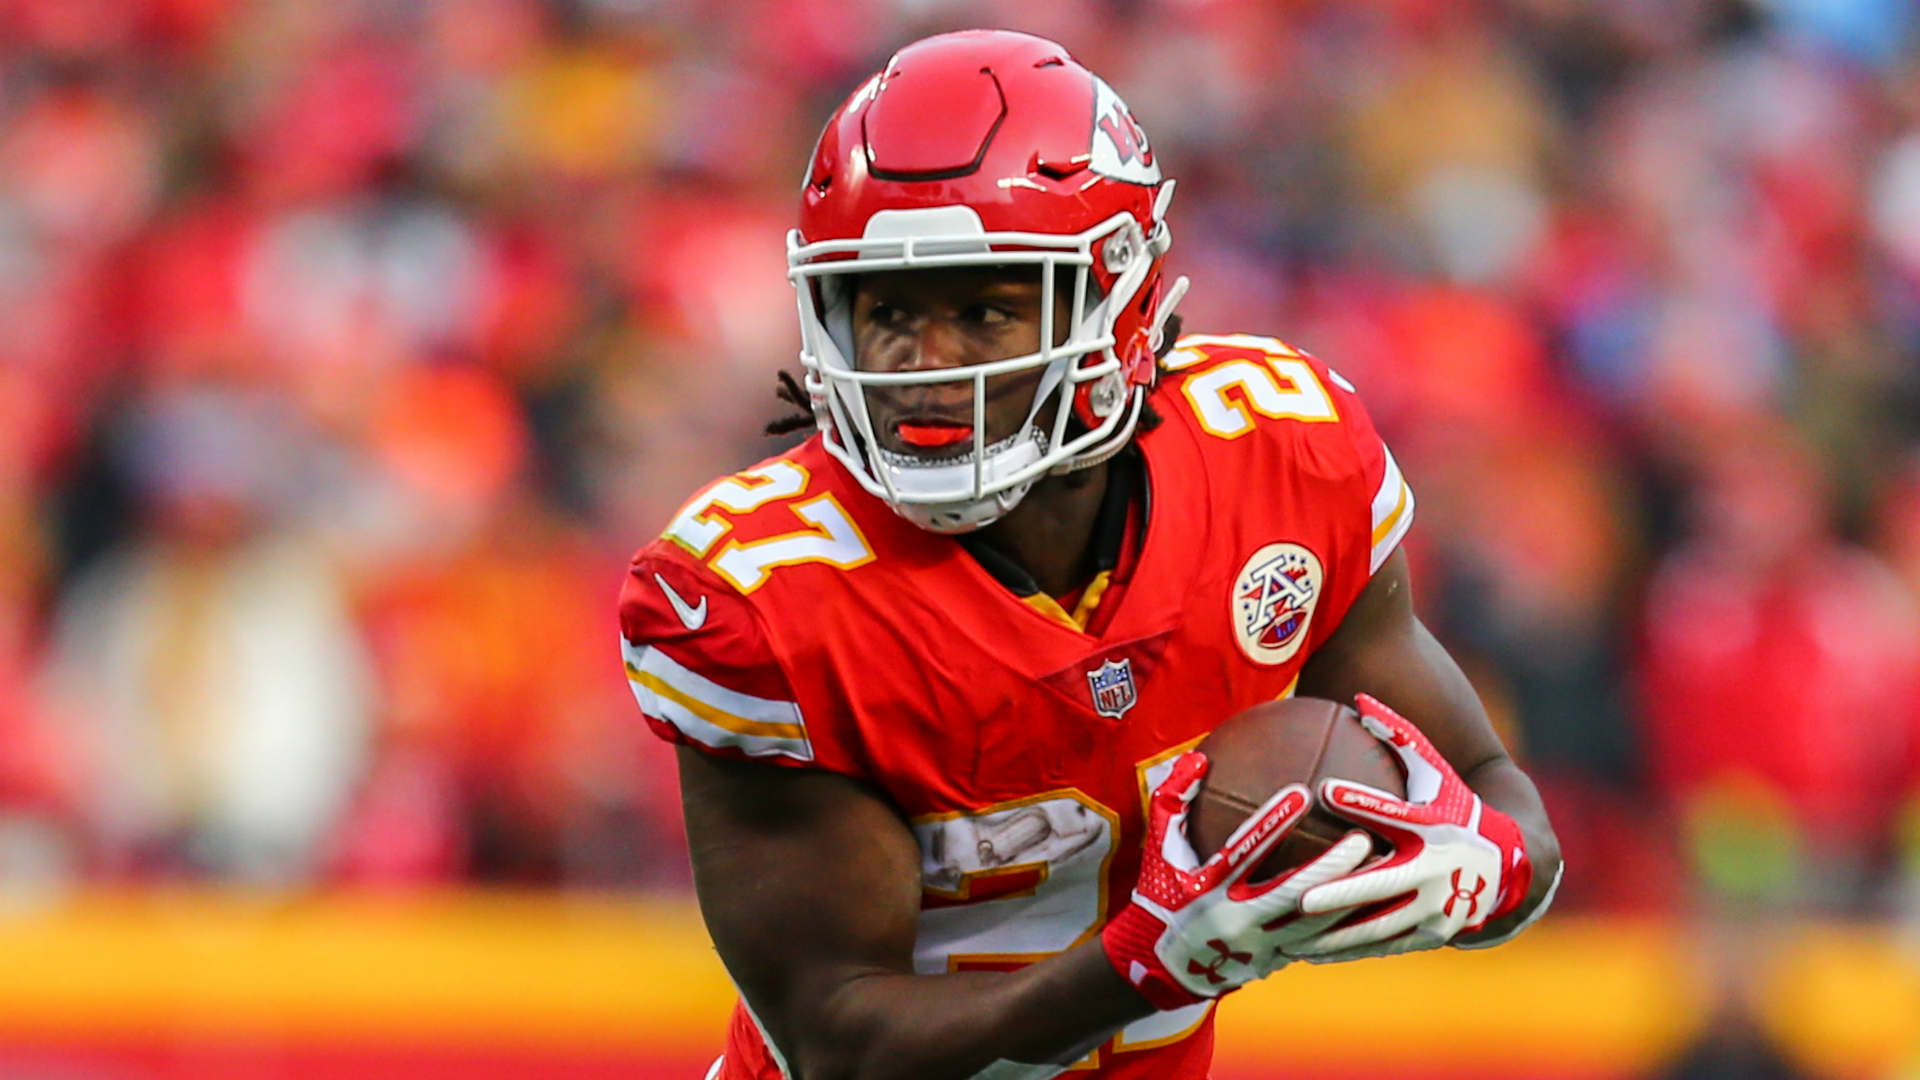 Chiefs RB Kareem Hunt Accused Of Shoving A Woman In Cleveland